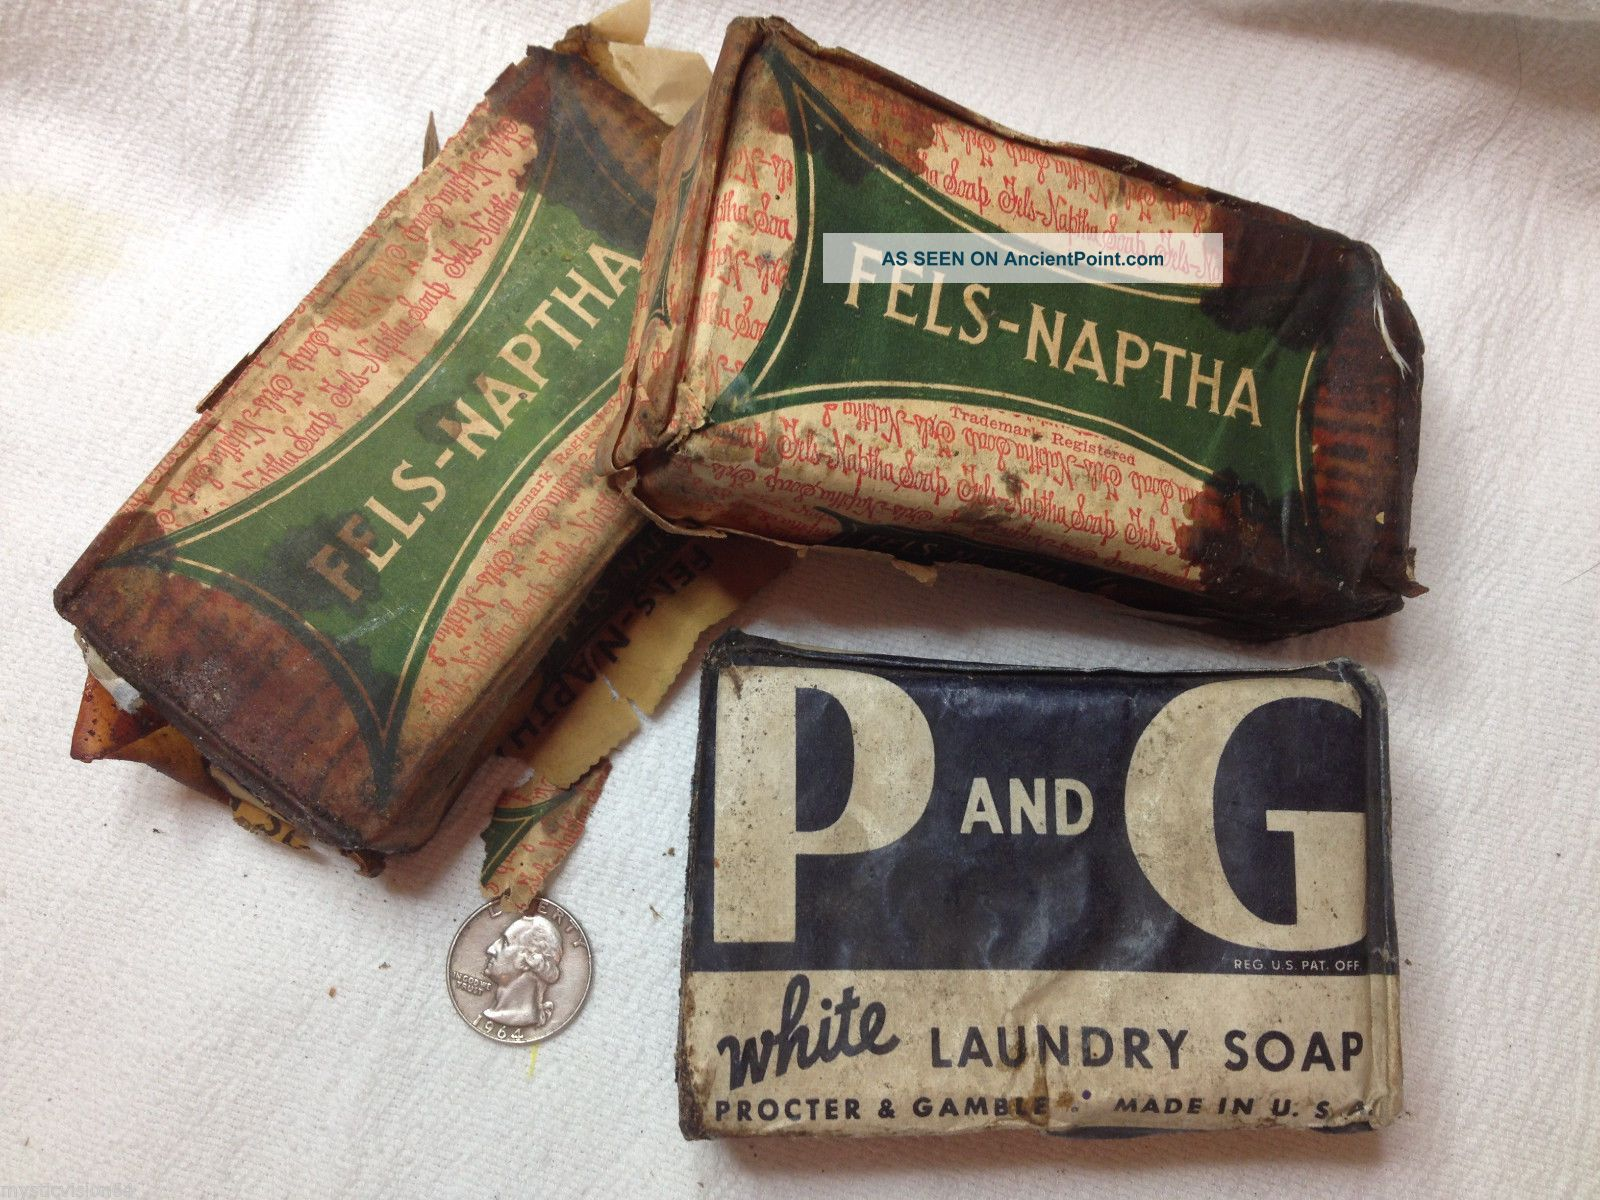 1920 - 40s Laundry Soap Blocks Fels - Naptha & Procter & Gamble Rustic Country Decor Other Antique Home & Hearth photo